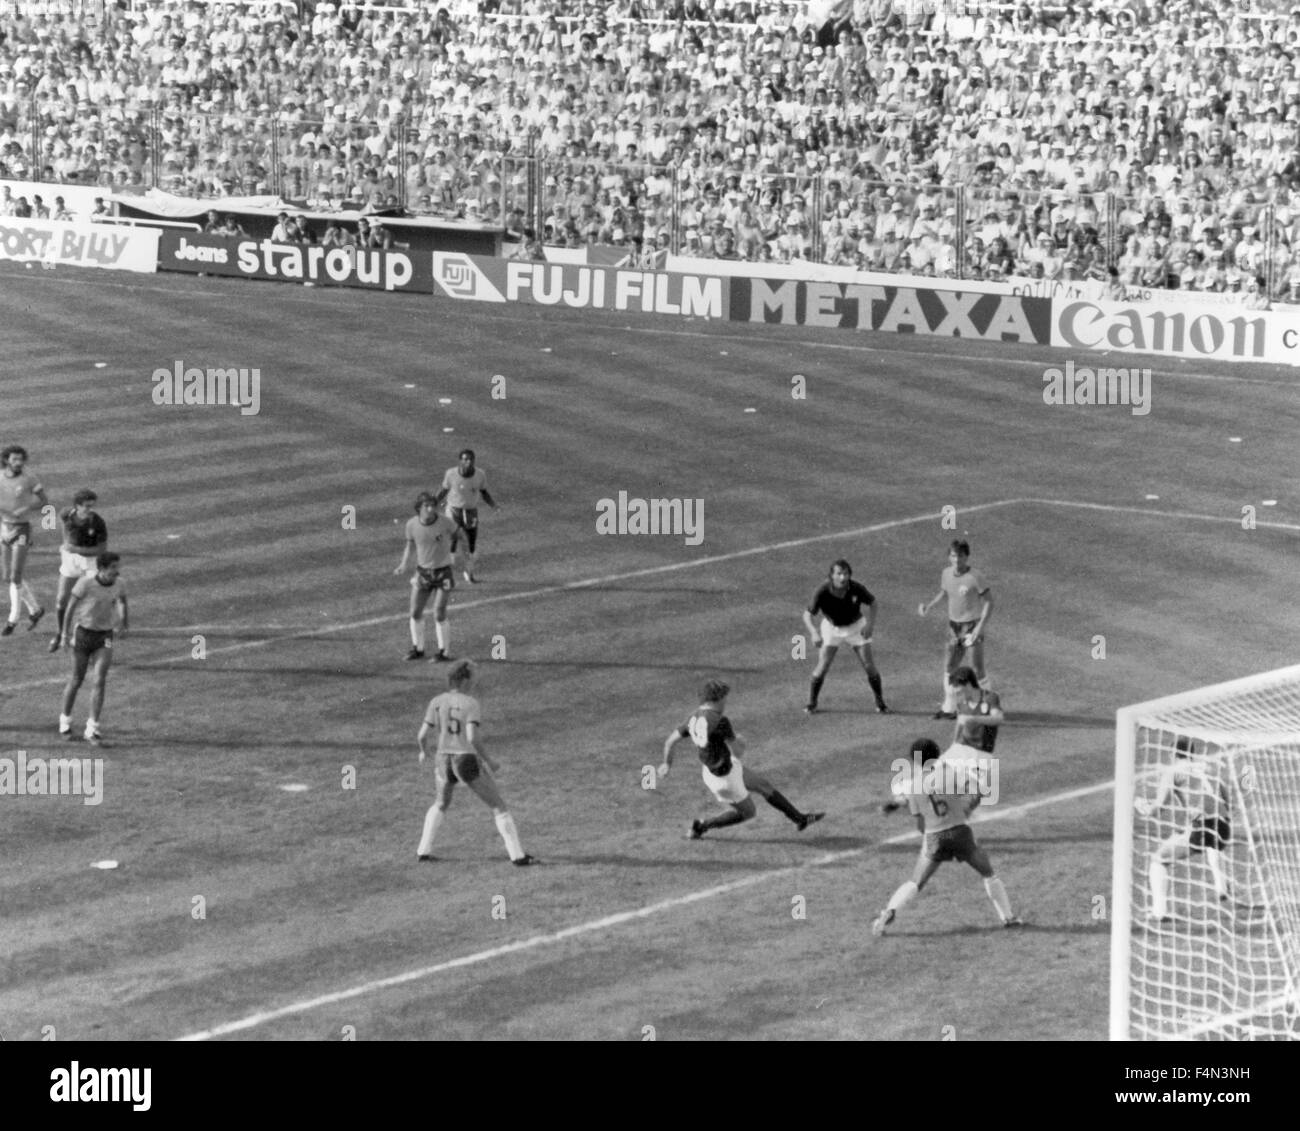 Italy-Brazil World Cup 1982 - Stock Image